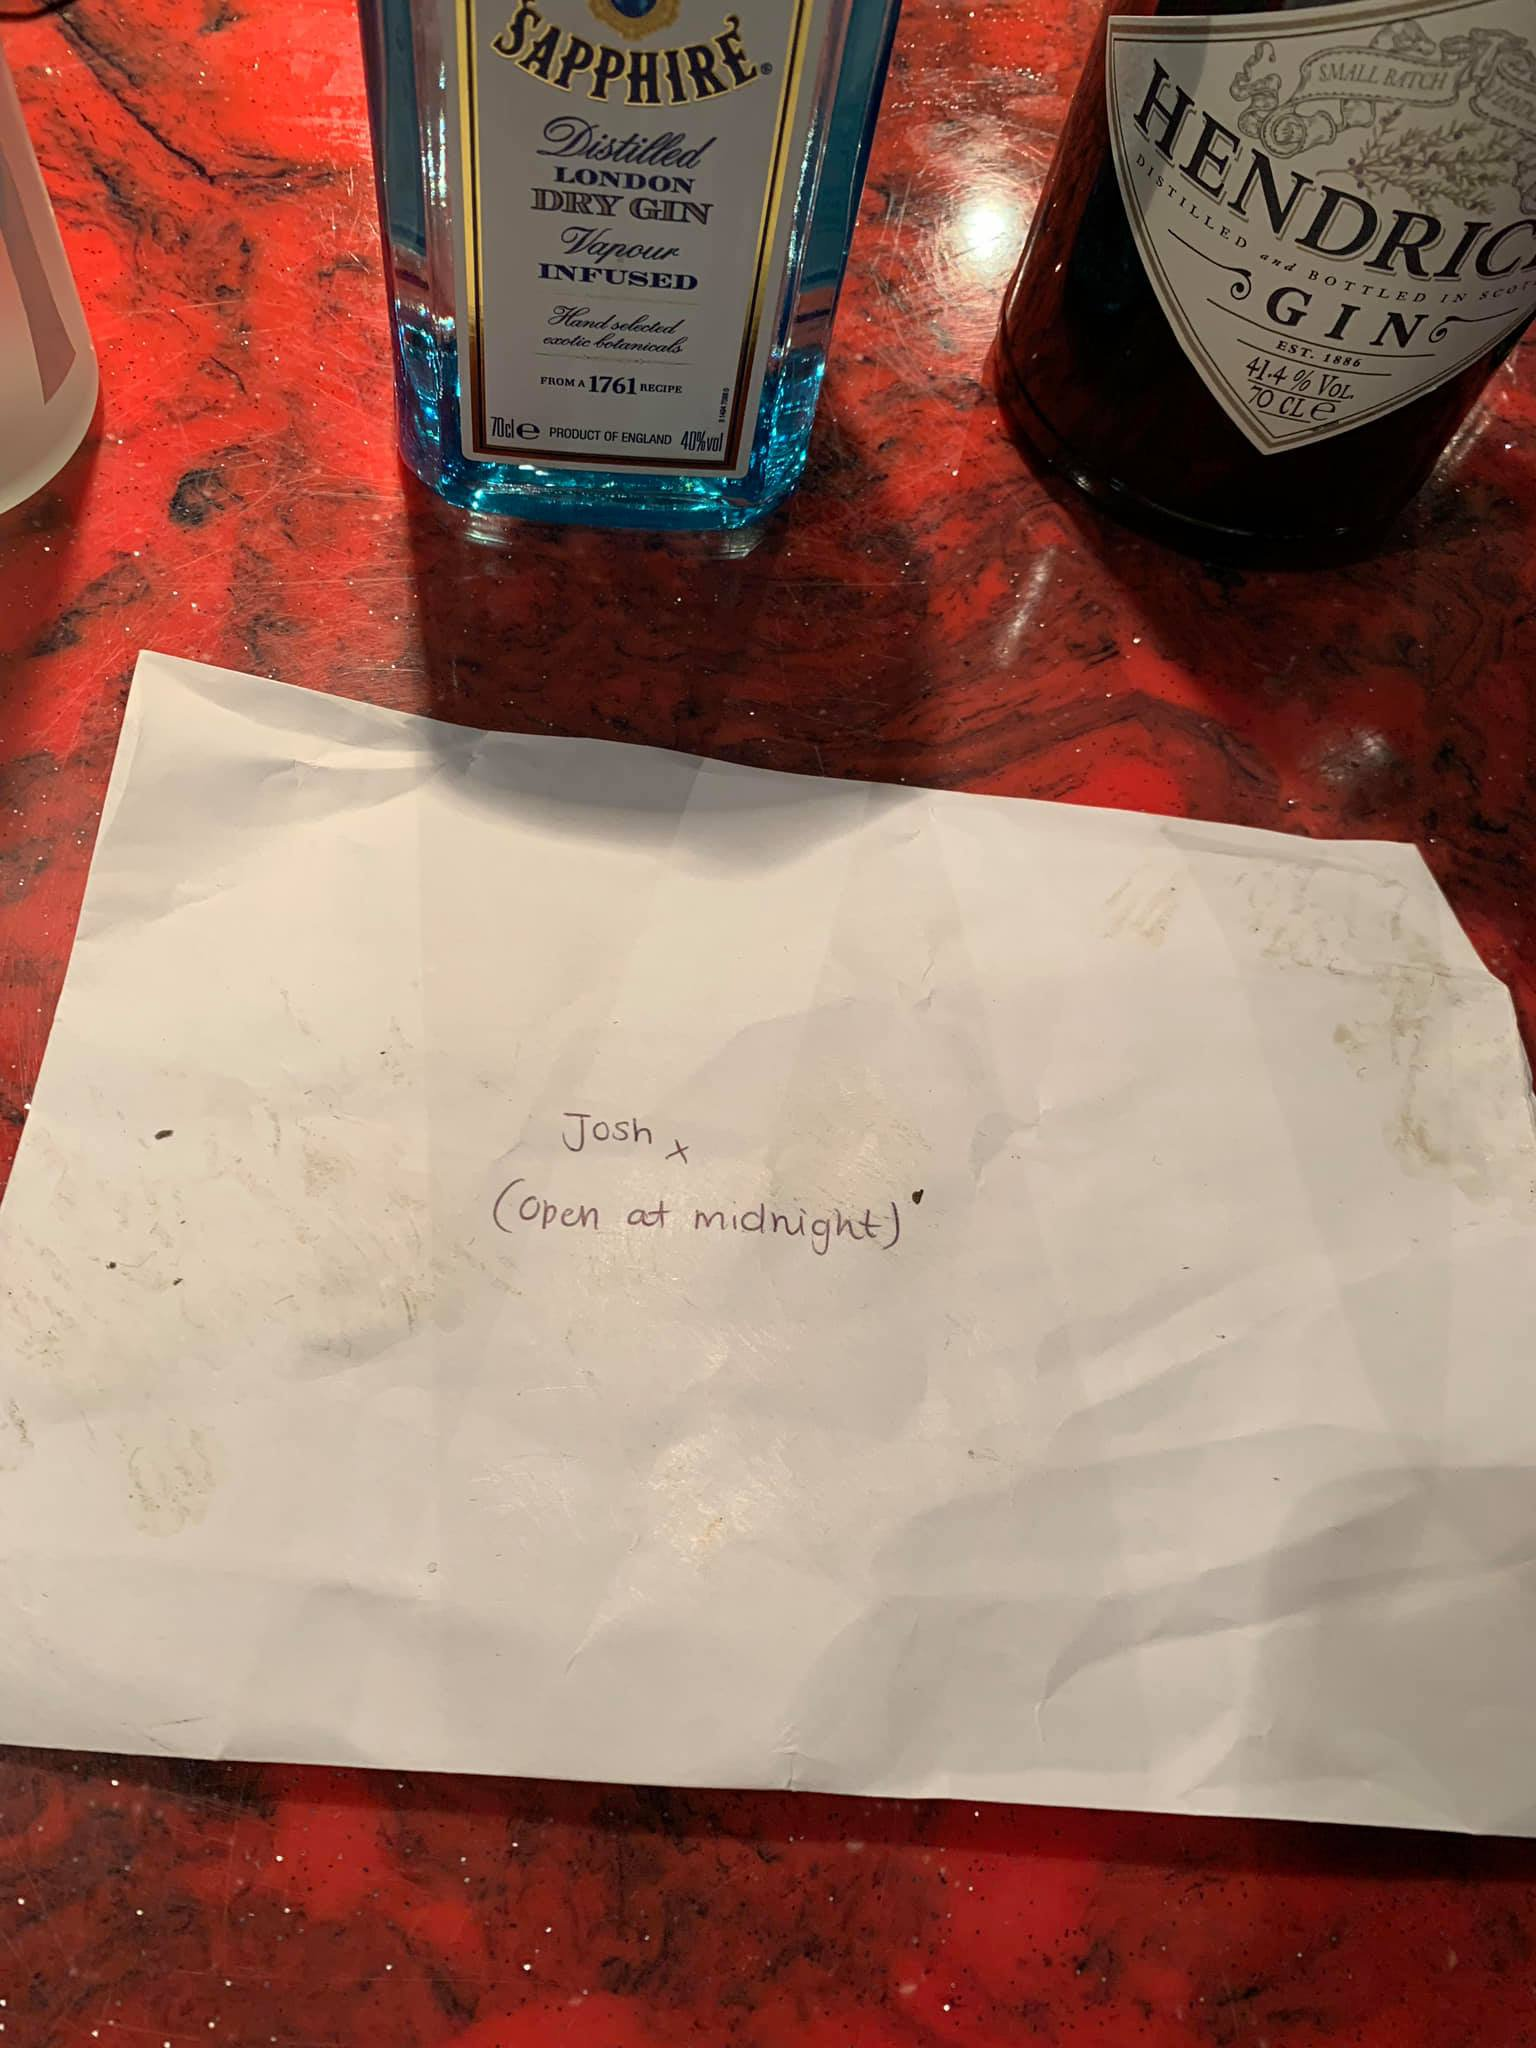 - Picture of the facebook post by Pryzm nightclub in Nottingham showing a crude poem announcing her pregnancy TRIANGLE NEWS 0203 176 5581 // contact@trianglenews.co.uk By Rosaleen Fenton A woman?s crude poem announcing that she?s pregnant has gone viral after it ended up on the floor of a nightclub unopened. Now the Nottingham nightclub is seeking the man, known as Josh, in a bid to reunite him with the announcement...where the woman jokes that he should have ?stuck it in her bum.? The cheekily penned note has gone viral after the club uploaded the letter to social media after cleaners found it on the floor. *Full copied filed via the wires/Triangle News* *TRIANGLE NEWS DOES NOT CLAIM ANY COPYRIGHT OR LICENSE IN THE ATTACHED MATERIAL. ANY DOWNLOADING FEES CHARGED BY TRIANGLE NEWS ARE FOR TRIANGLE NEWS SERVICES ONLY, AND DO NOT, NOR ARE THEY INTENDED TO, CONVEY TO THE USER ANY COPYRIGHT OR LICENSE IN THE MATERIAL. BY PUBLISHING THIS MATERIAL , THE USER EXPRESSLY AGREES TO INDEMNIFY AND TO HOLD TRIANGLE NEWS HARMLESS FROM ANY CLAIMS, DEMANDS, OR CAUSES OF ACTION ARISING OUT OF OR CONNECTED IN ANY WAY WITH USER'S PUBLICATION OF THE MATERIAL*